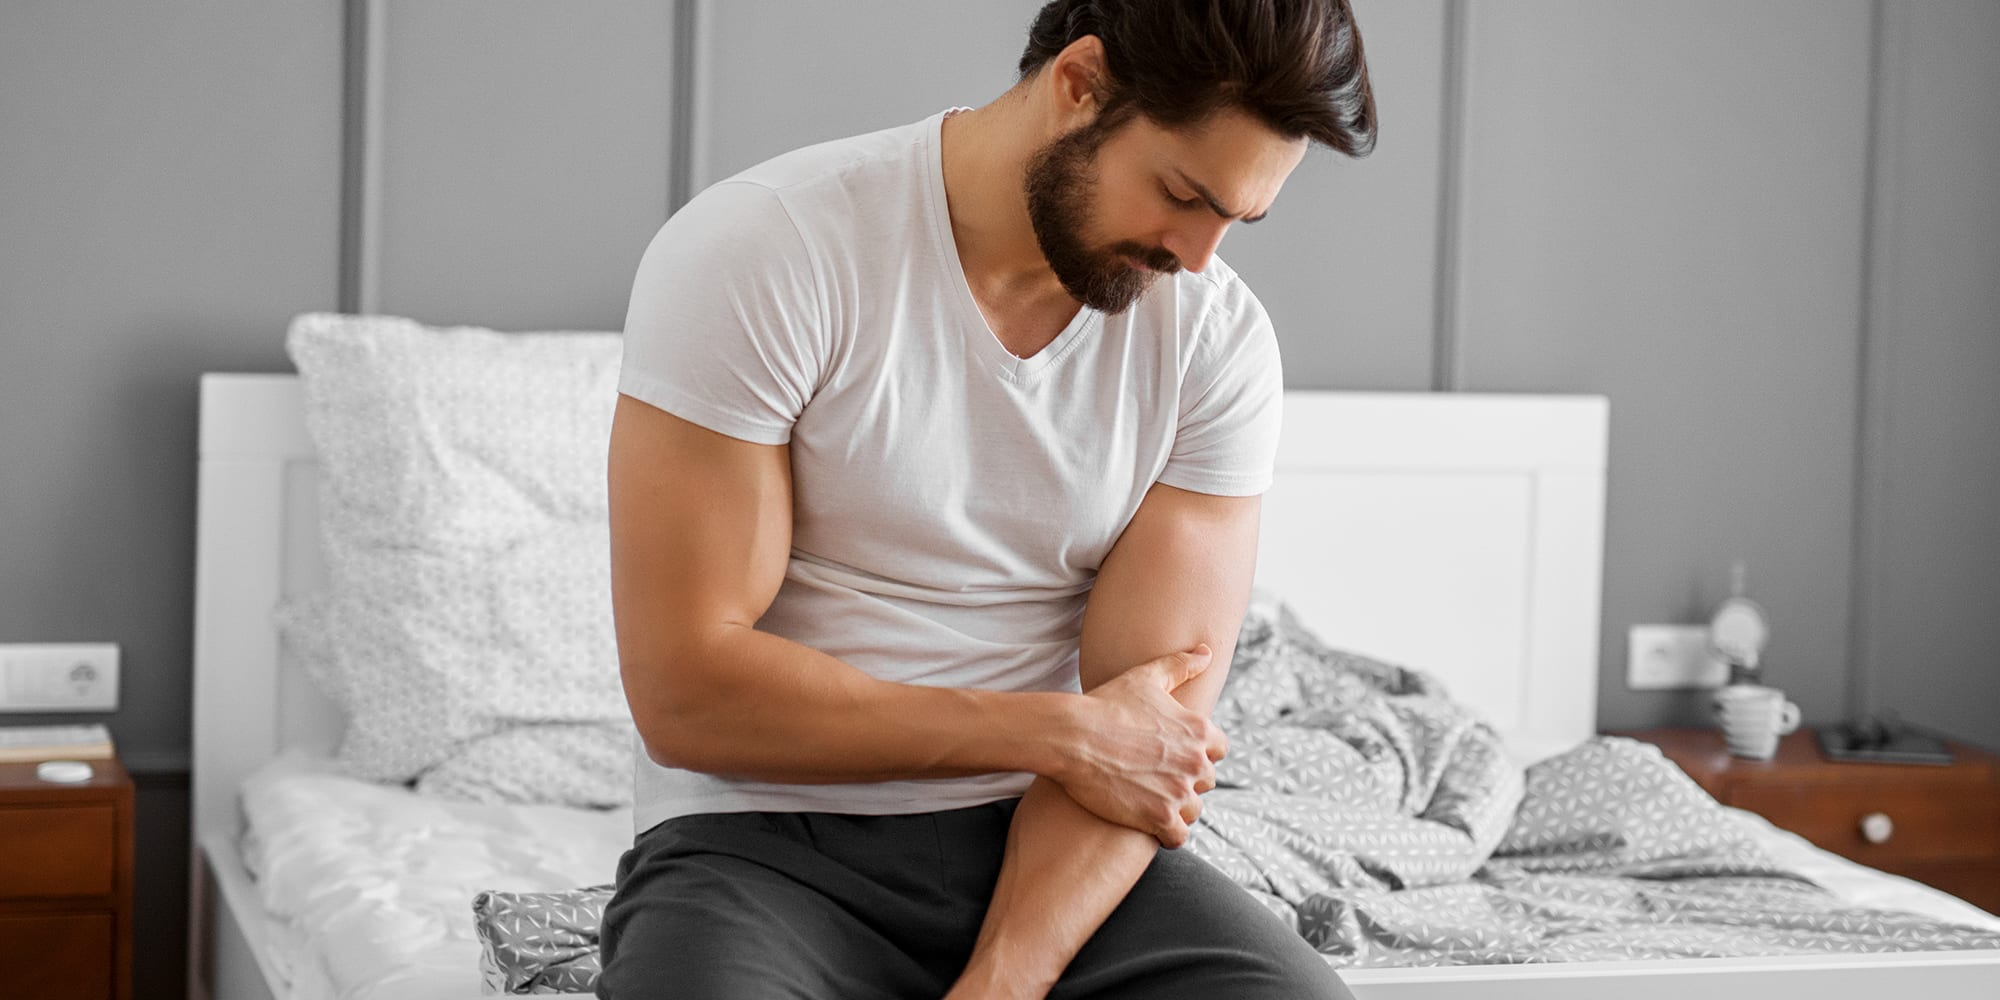 Tennis Elbow Exercises for Rehab and Prevention